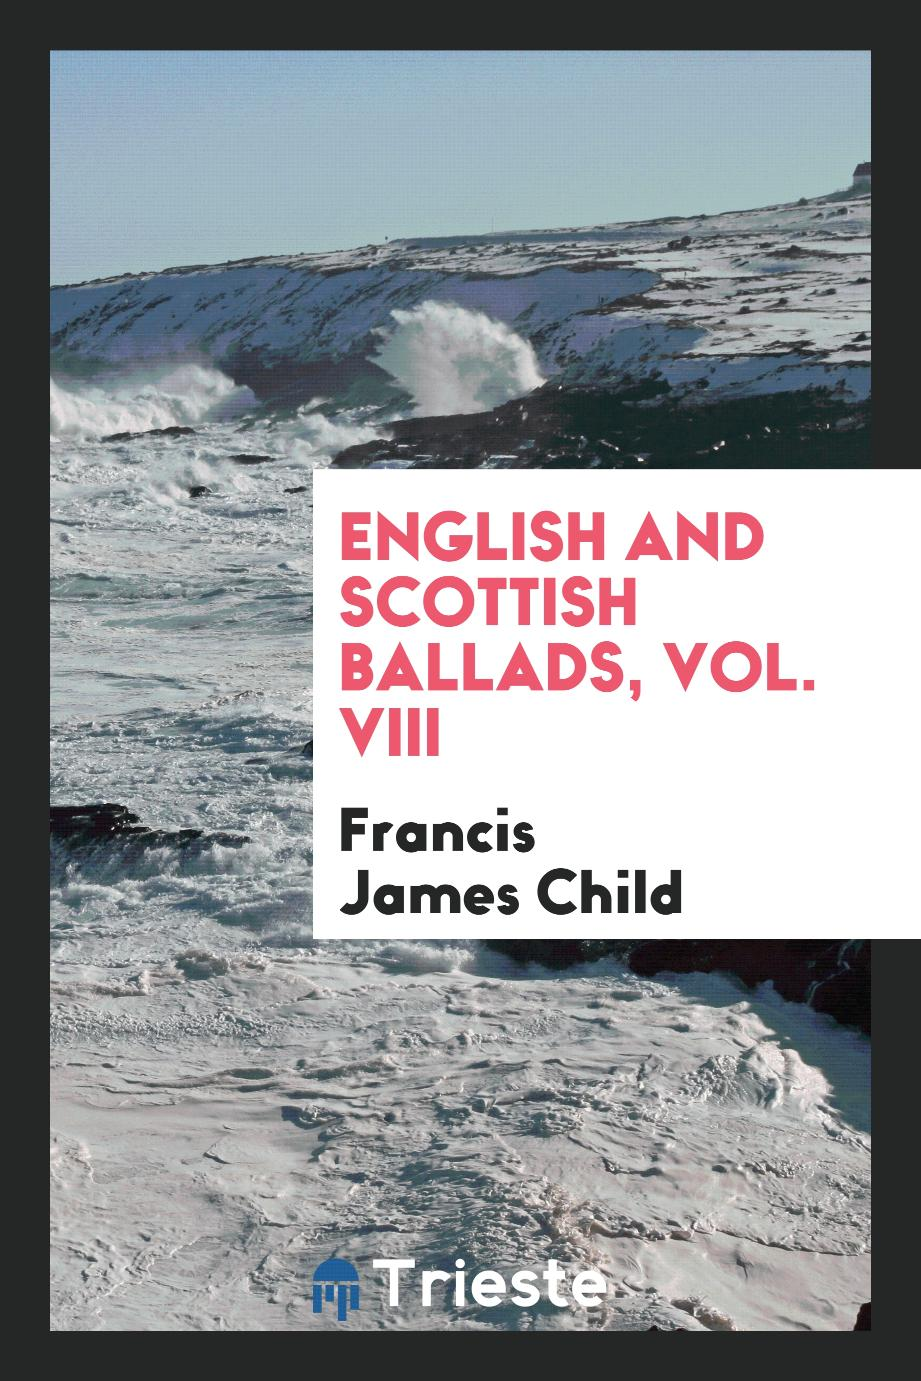 English and Scottish Ballads, Vol. VIII